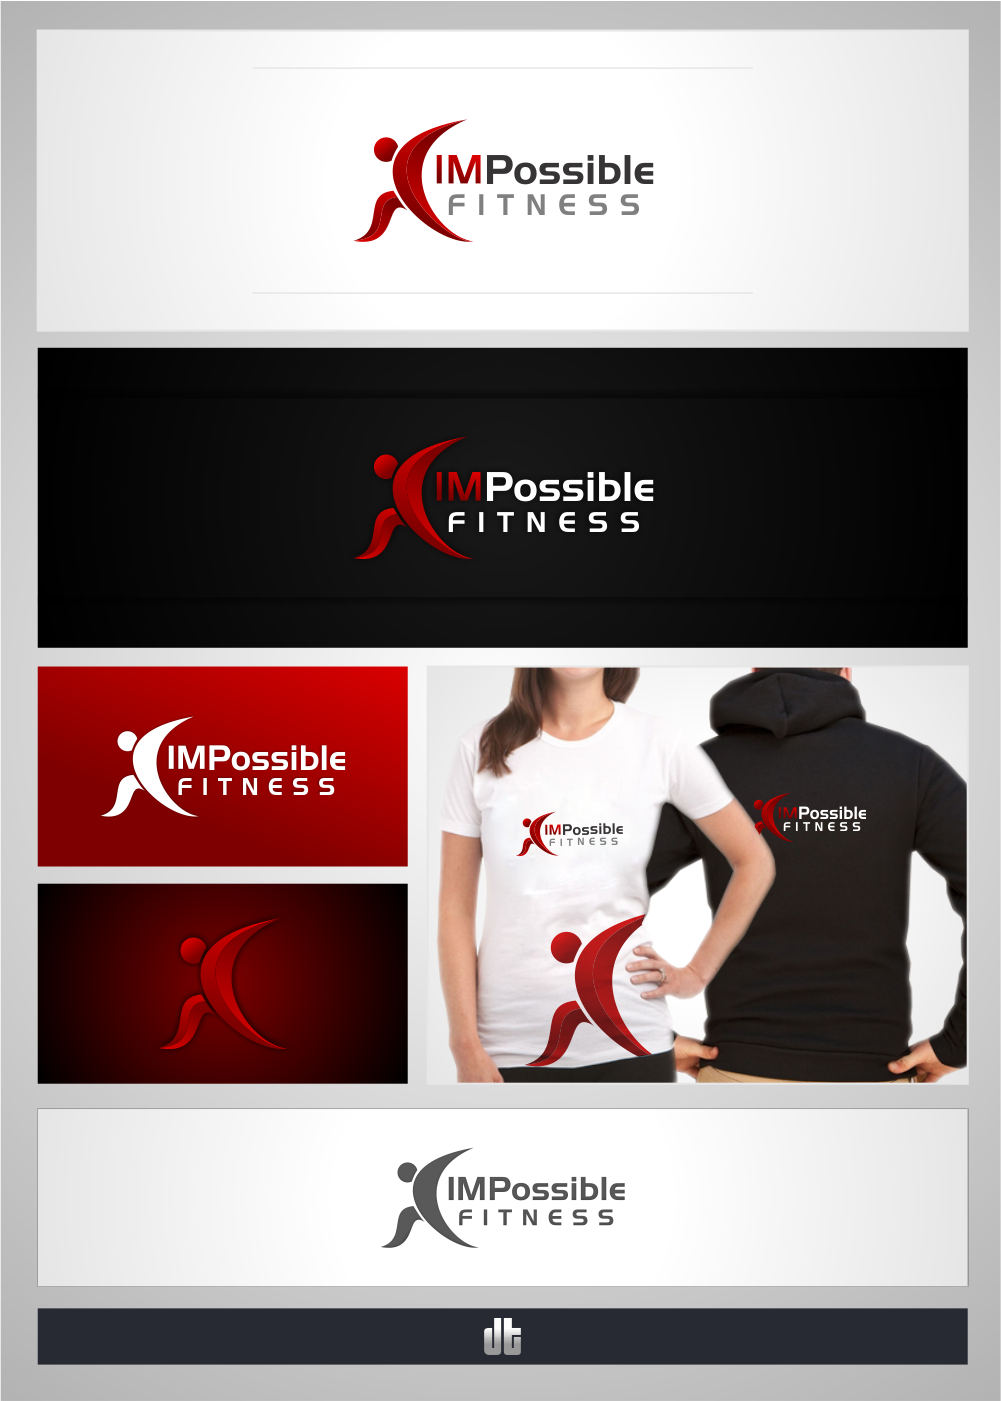 Help IMPossible Fitness with a new logo